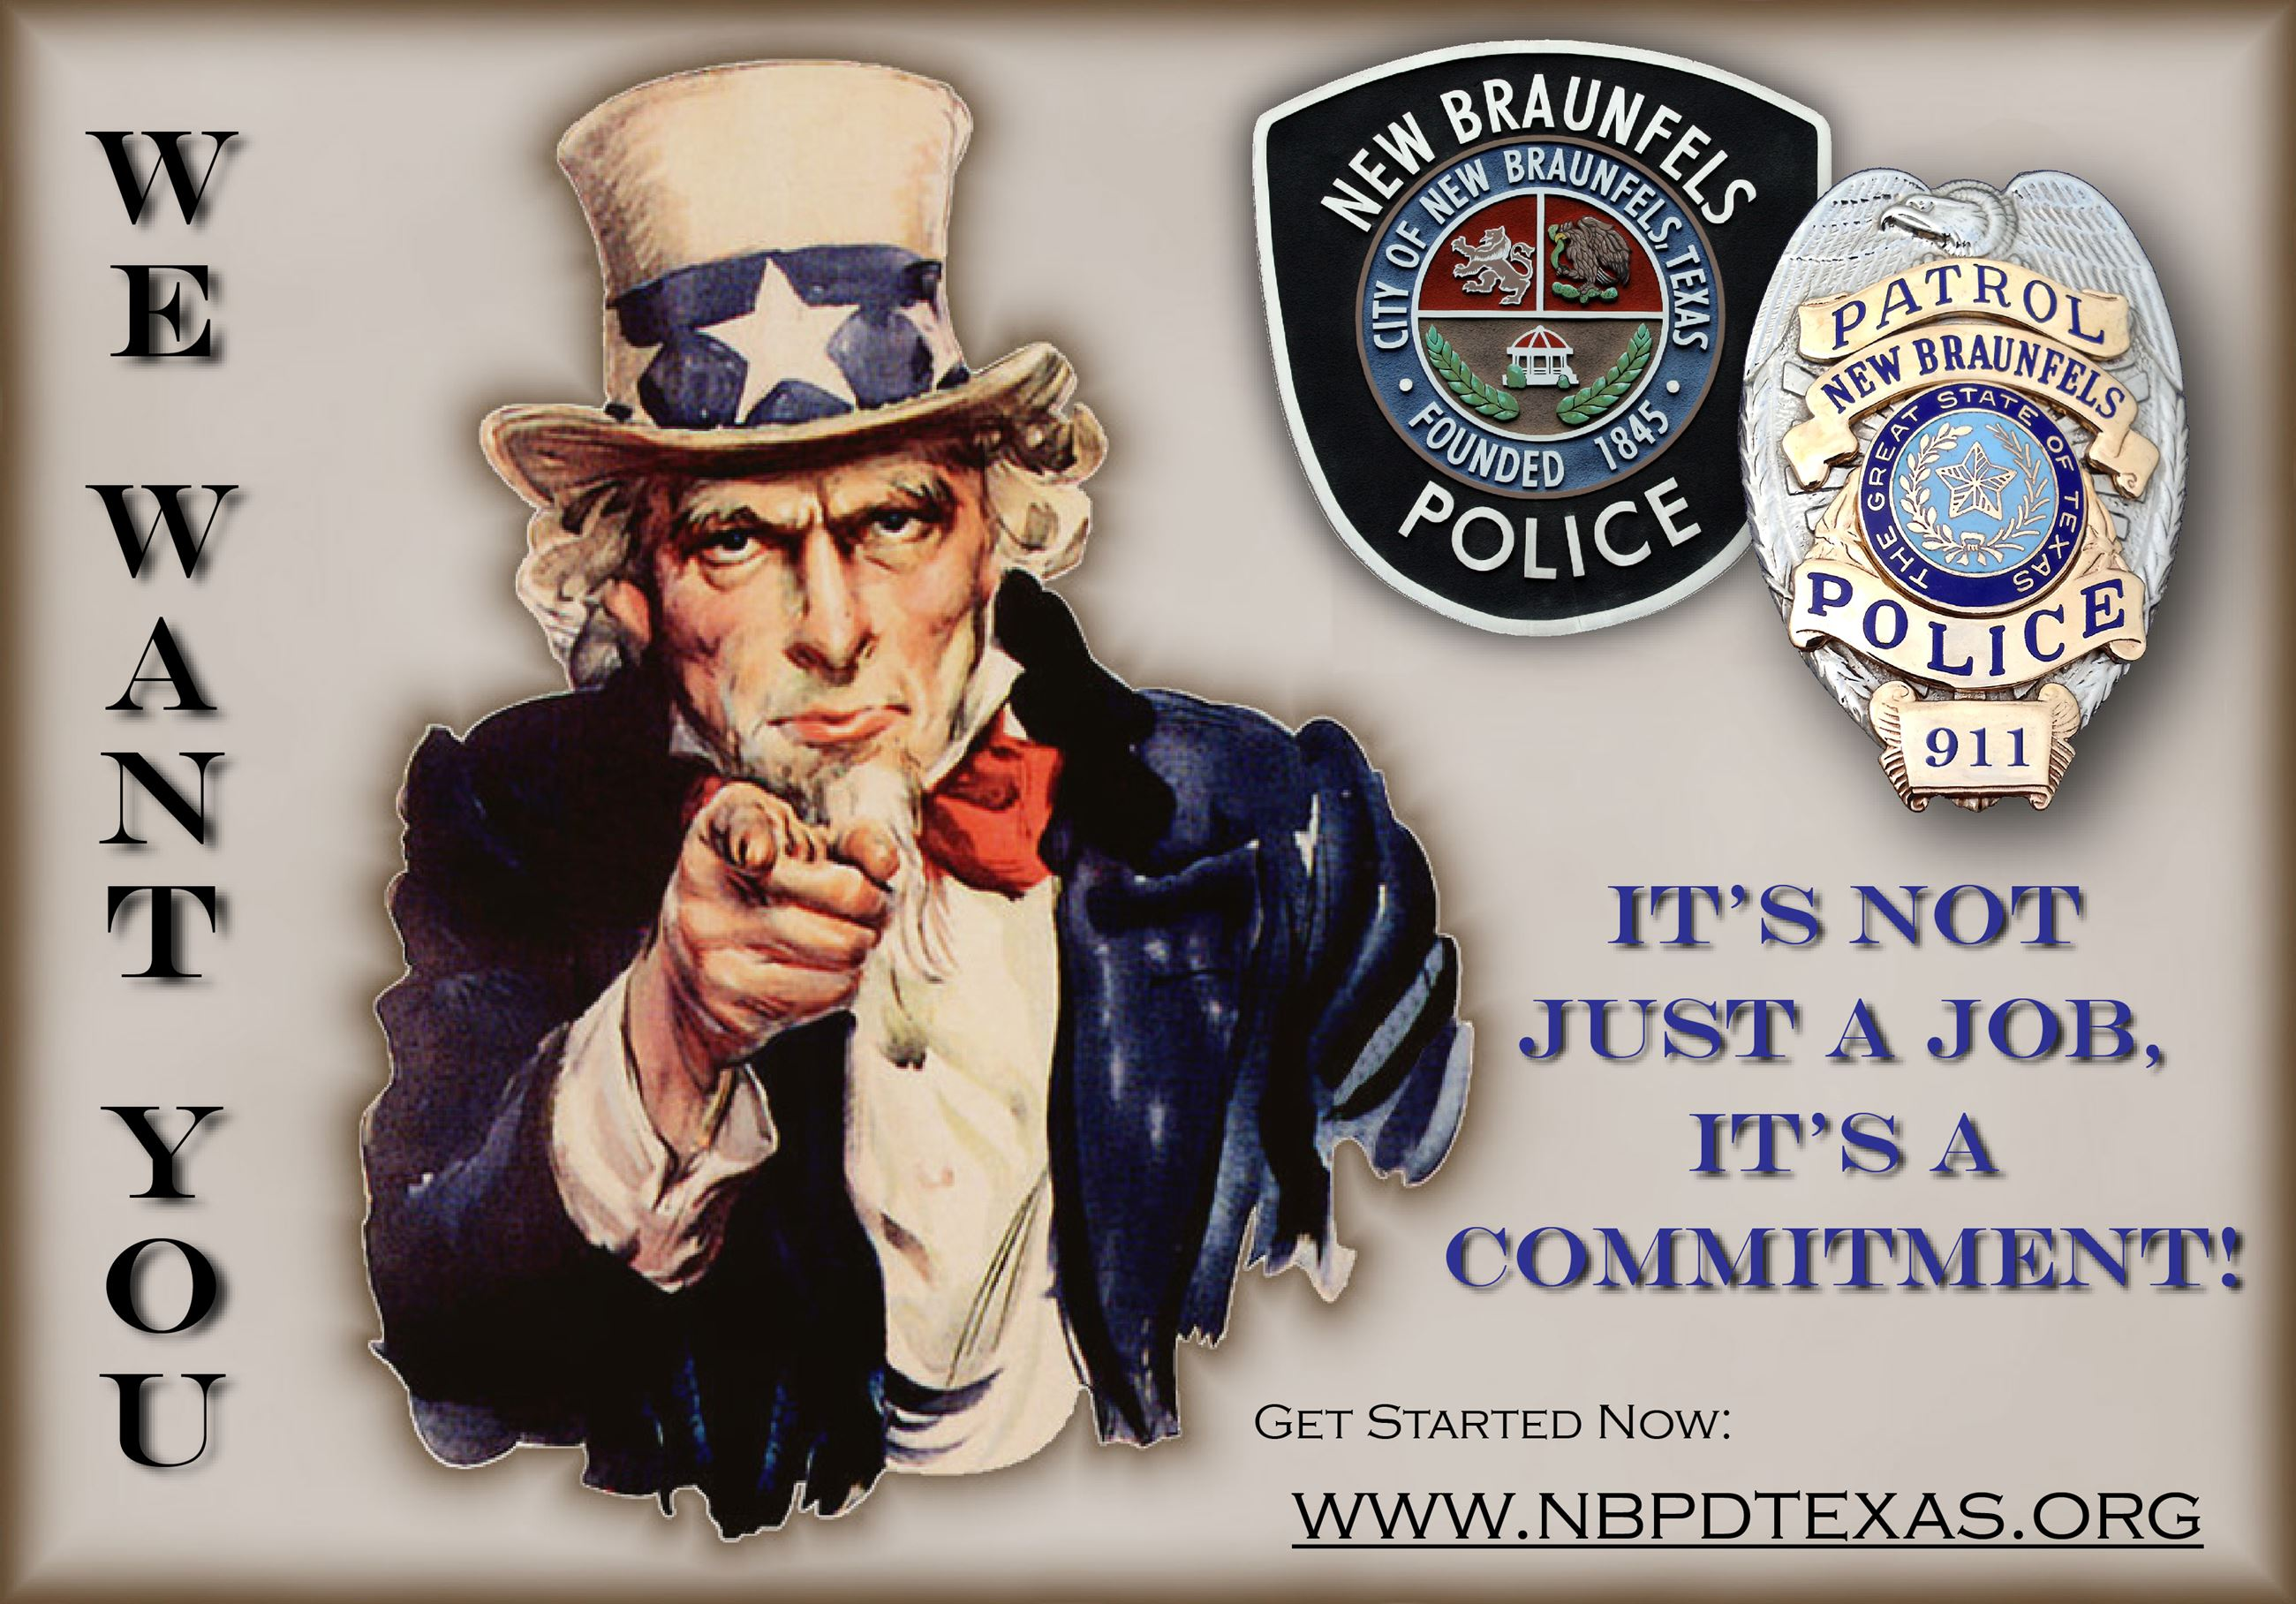 NBPD Recruiting Poster - double image